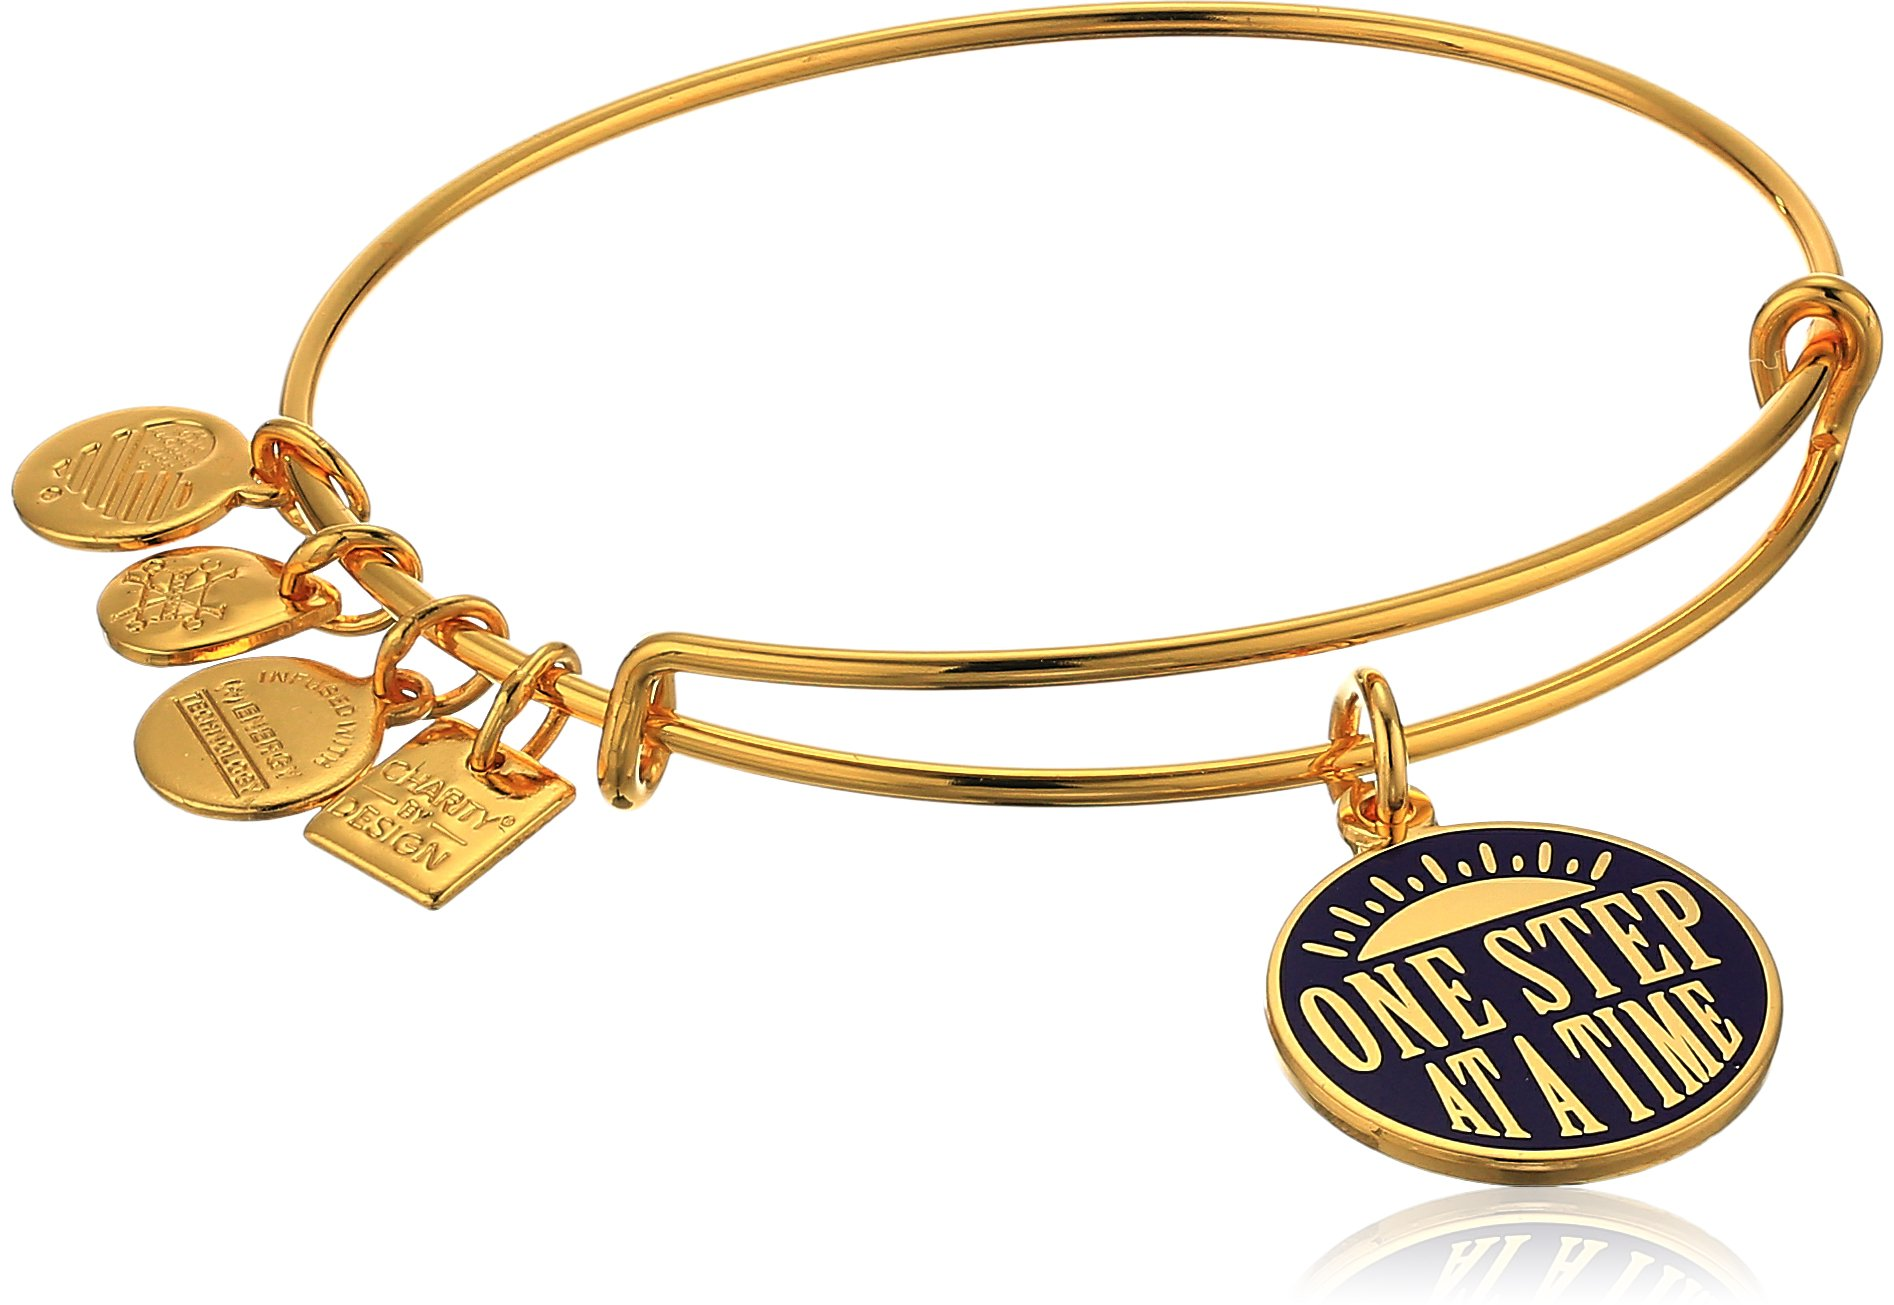 Alex and Ani Charity By Design One Step Charm Bangle, Expandable